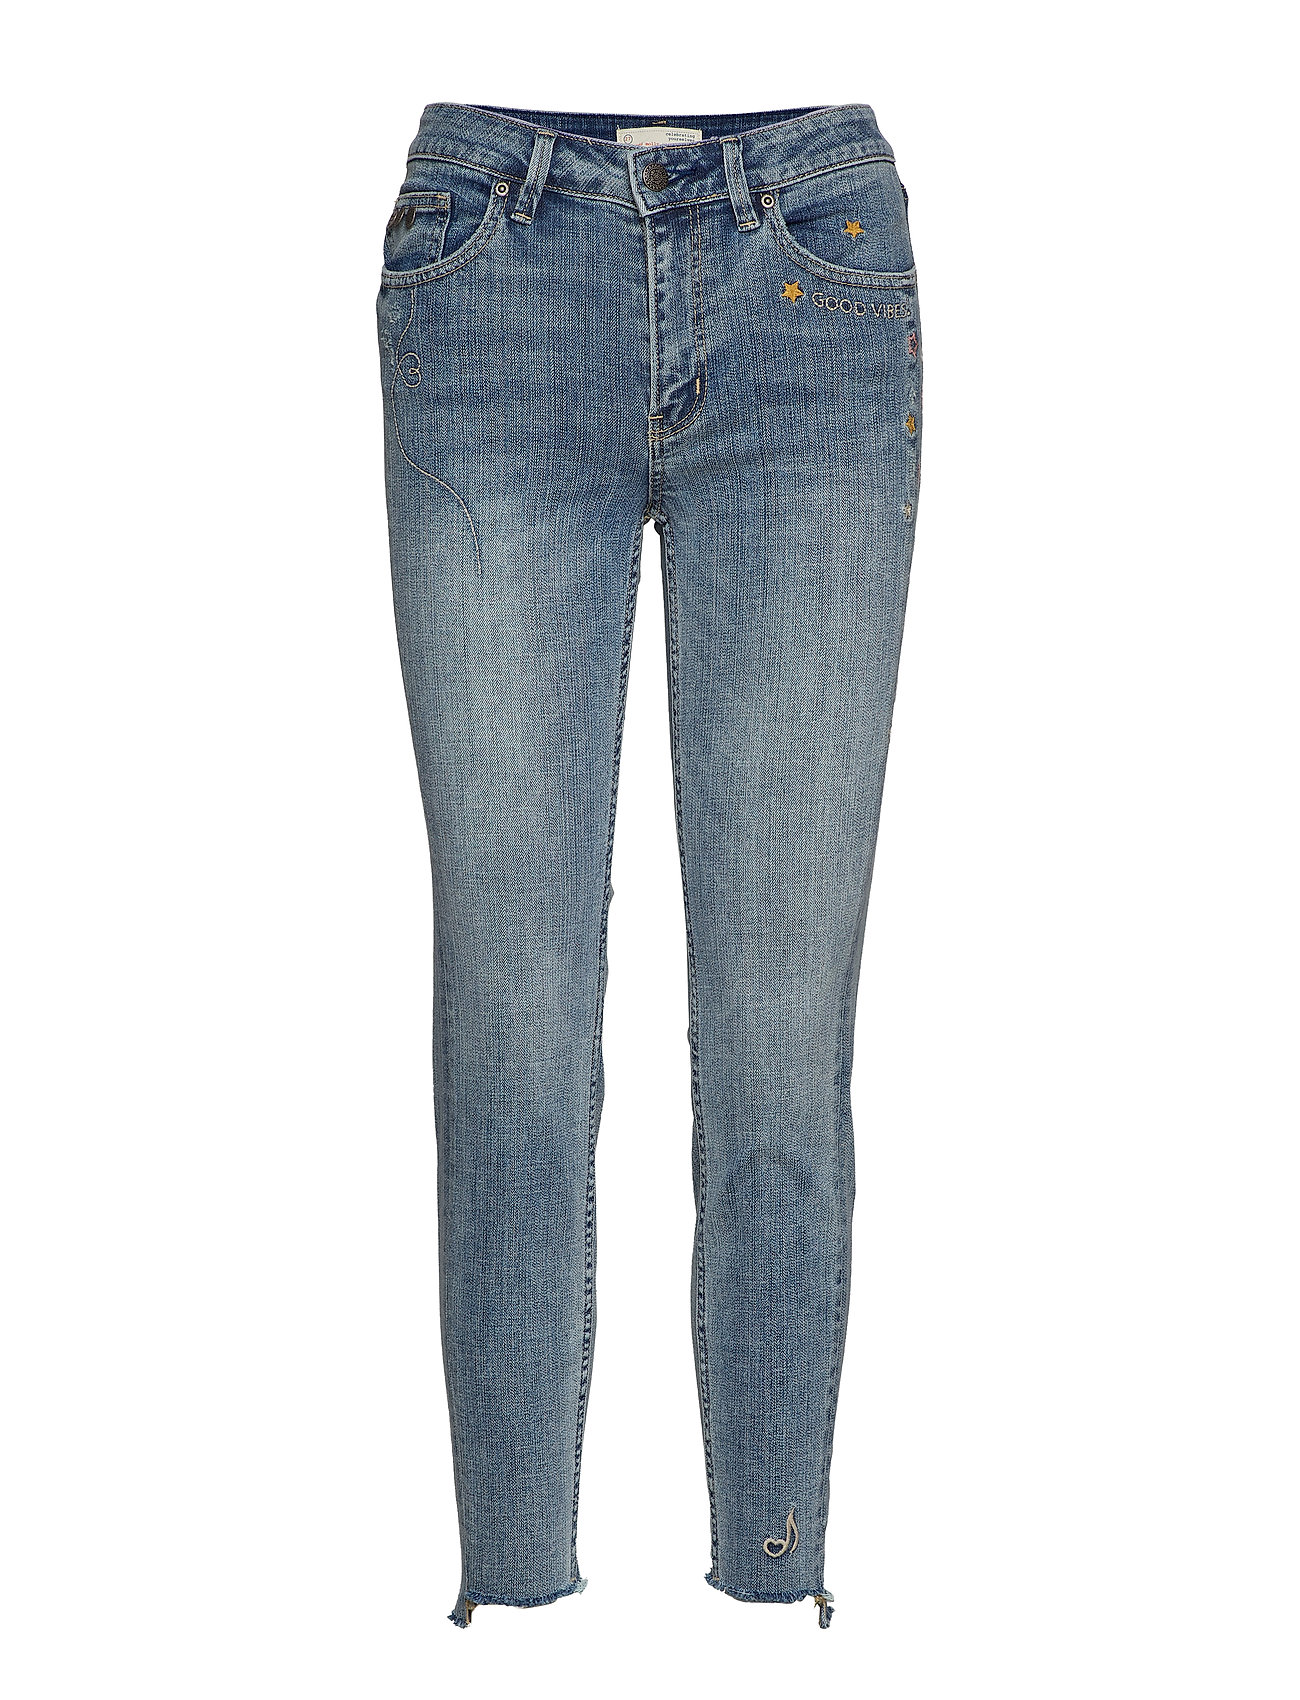 Image of Groupie Cropped Jean Skinny Jeans Blå ODD MOLLY (3119080725)